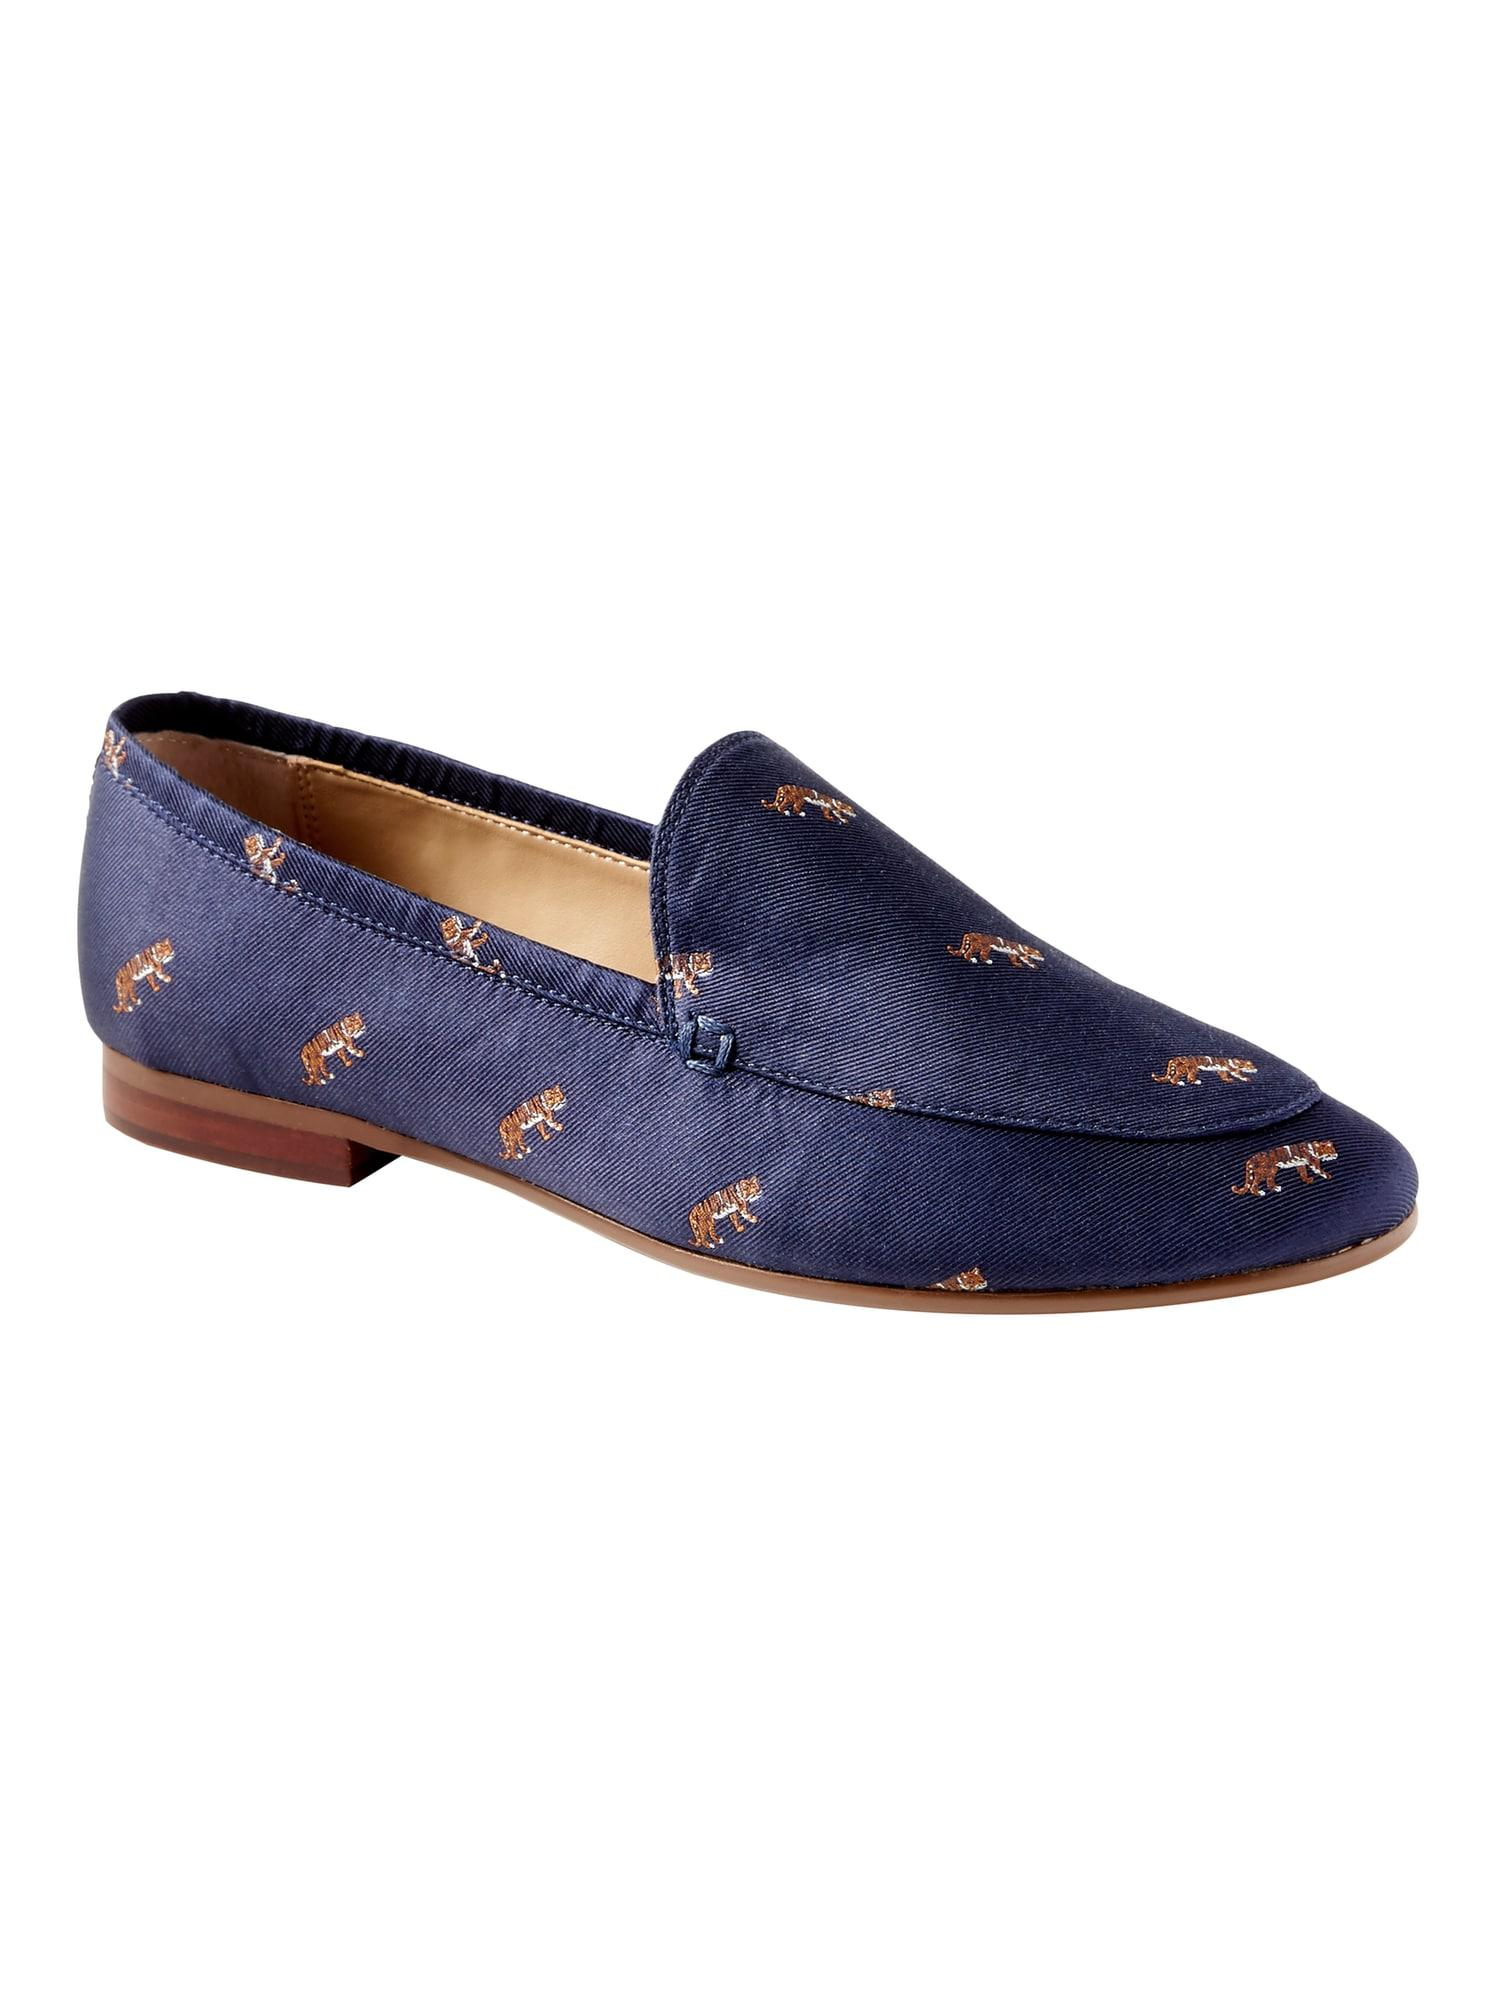 3771dbe25a4 Lyst - Banana Republic Demi Tiger Loafer in Blue